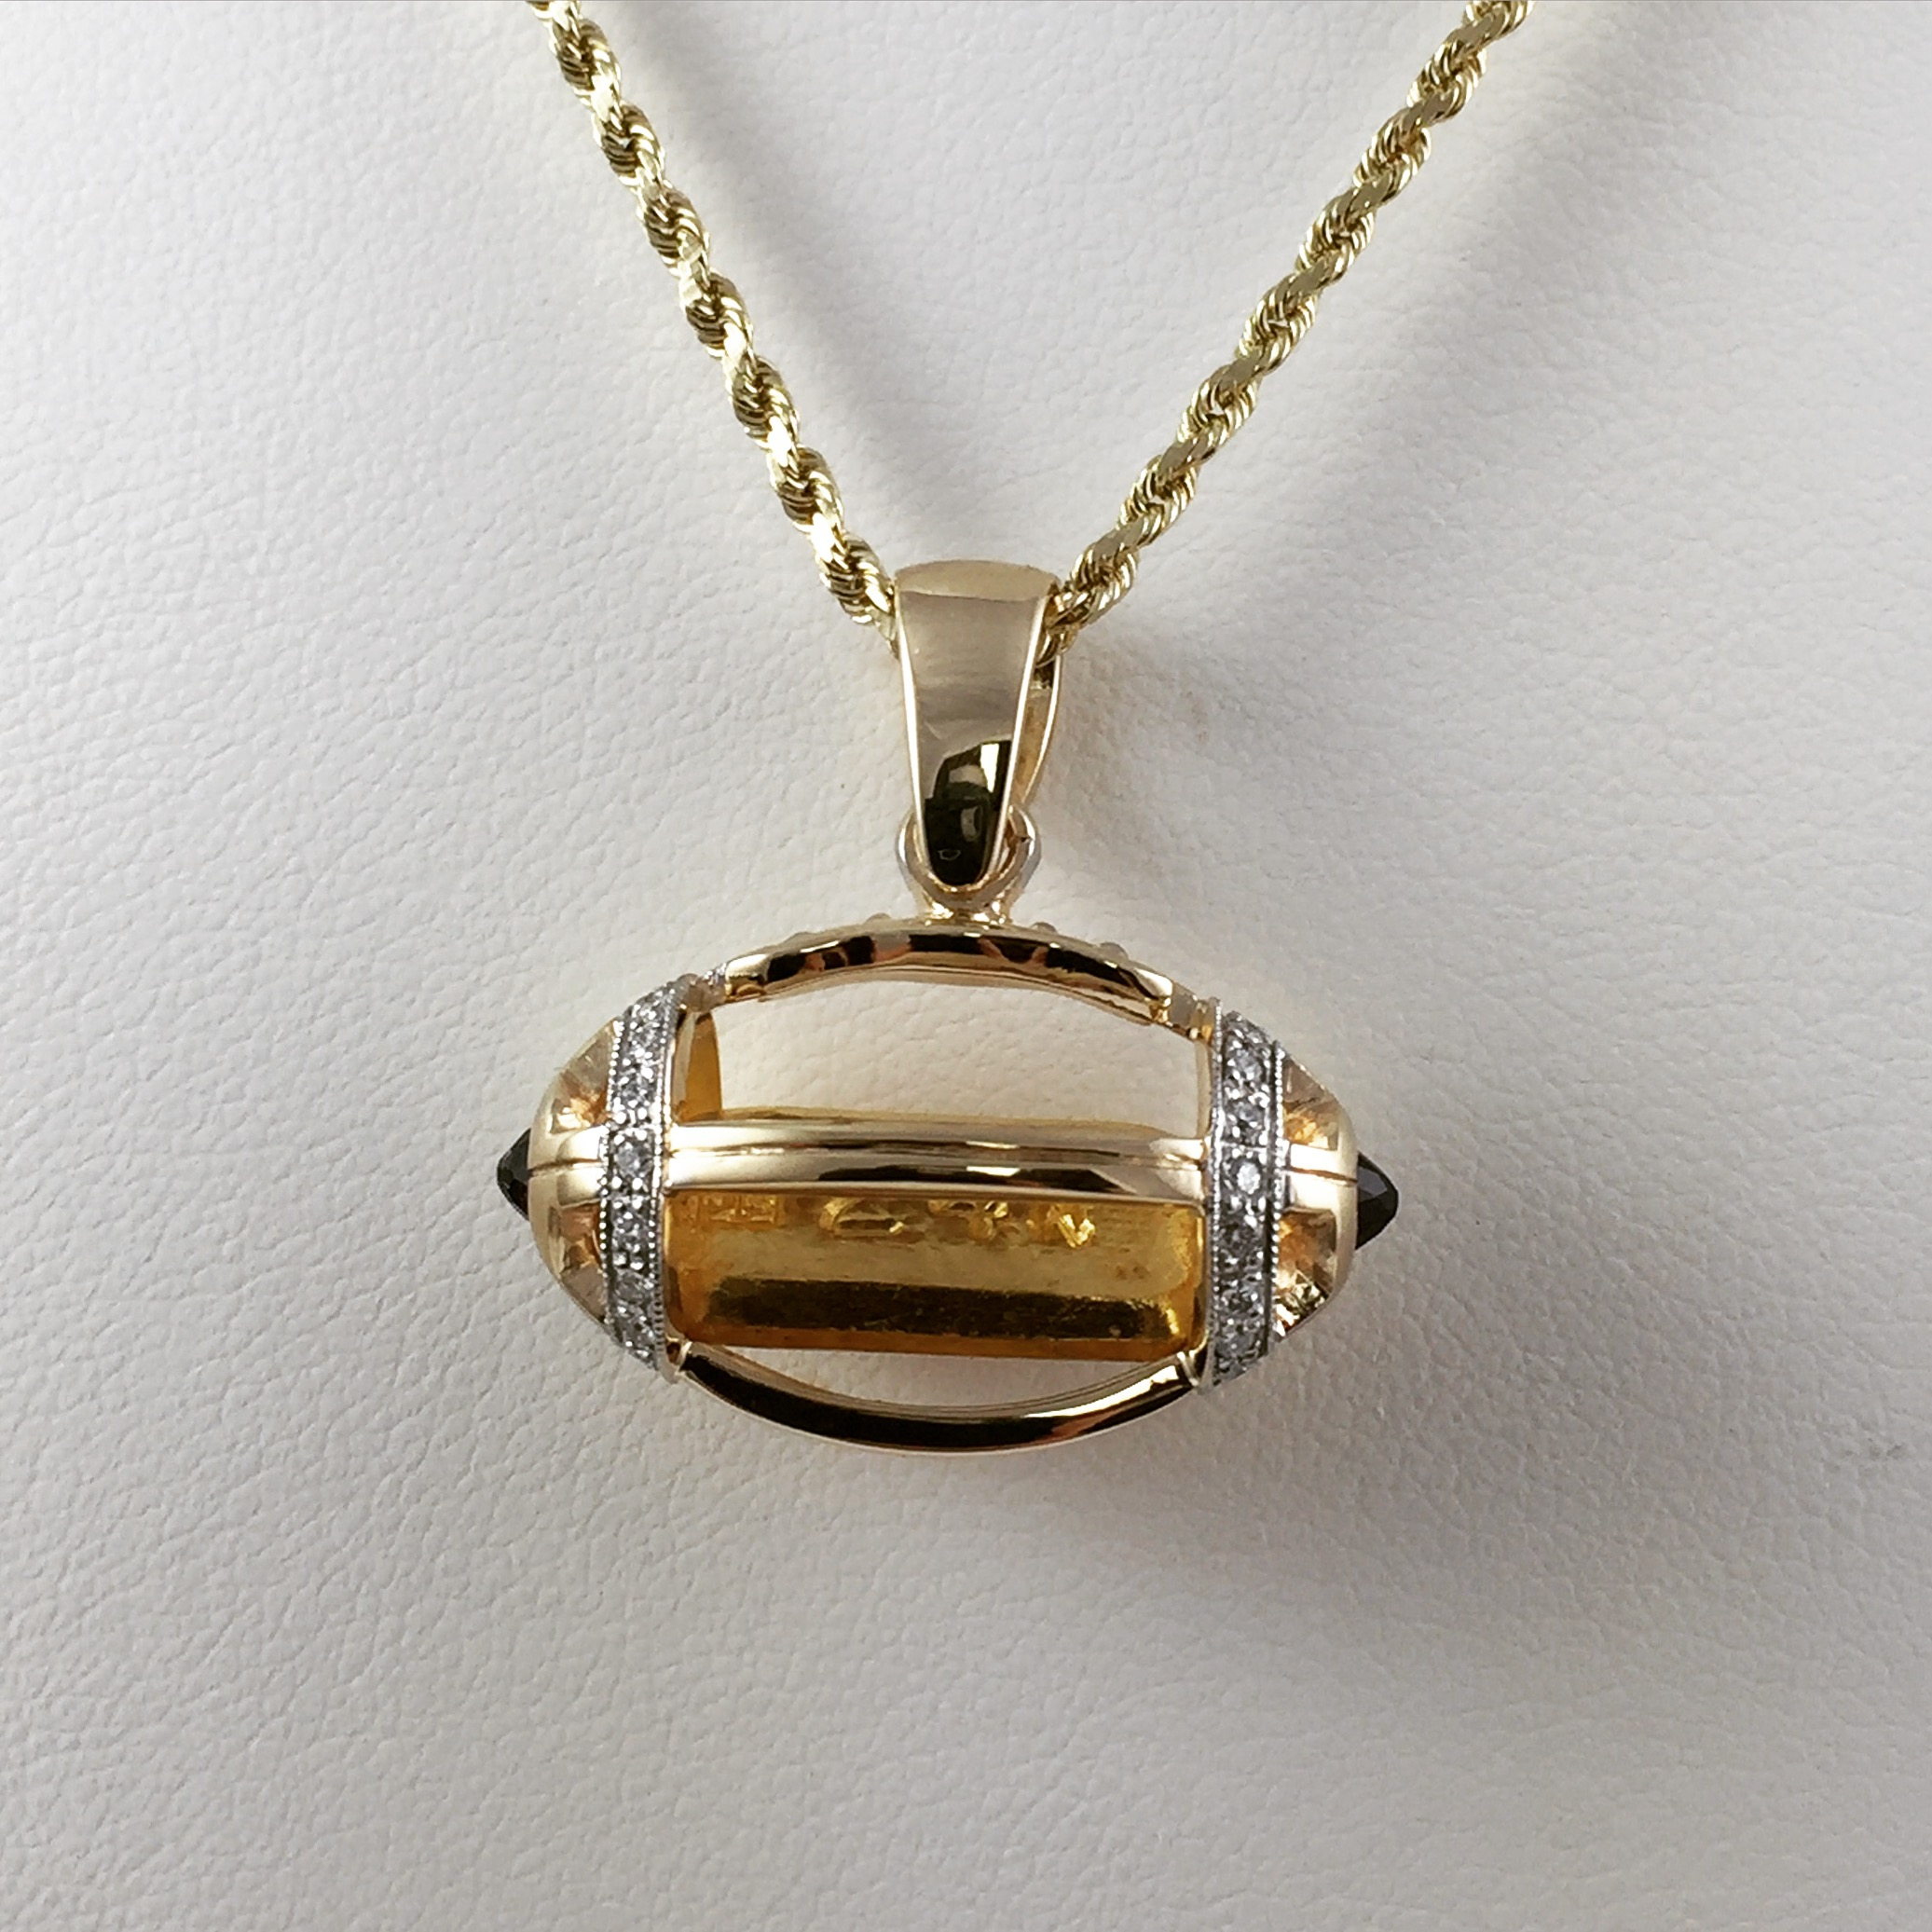 gold chains bubble pendant custom presidents necklaces products